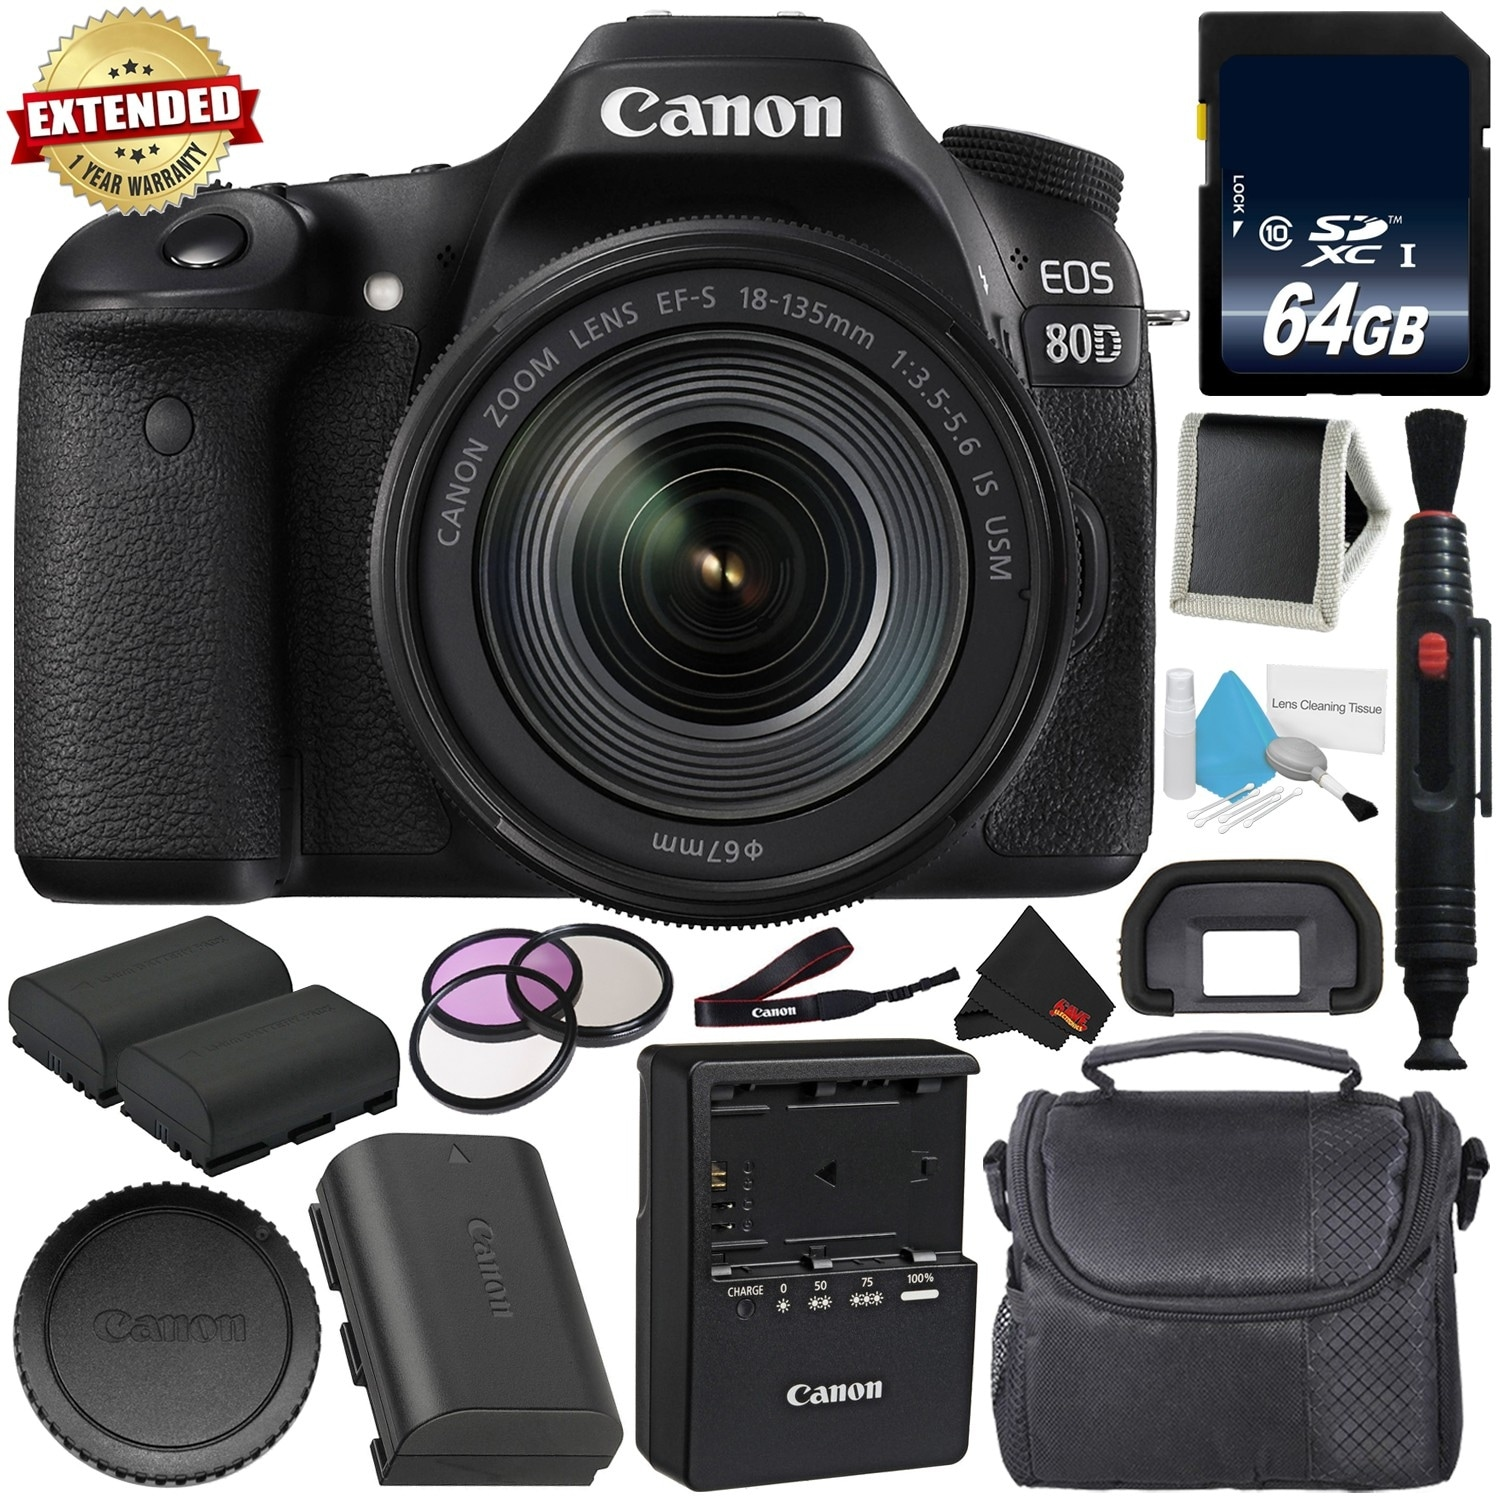 Shop Canon Eos 80d Dslr Camera Bundle Body Only Intl Model The Widest Range Of Leading